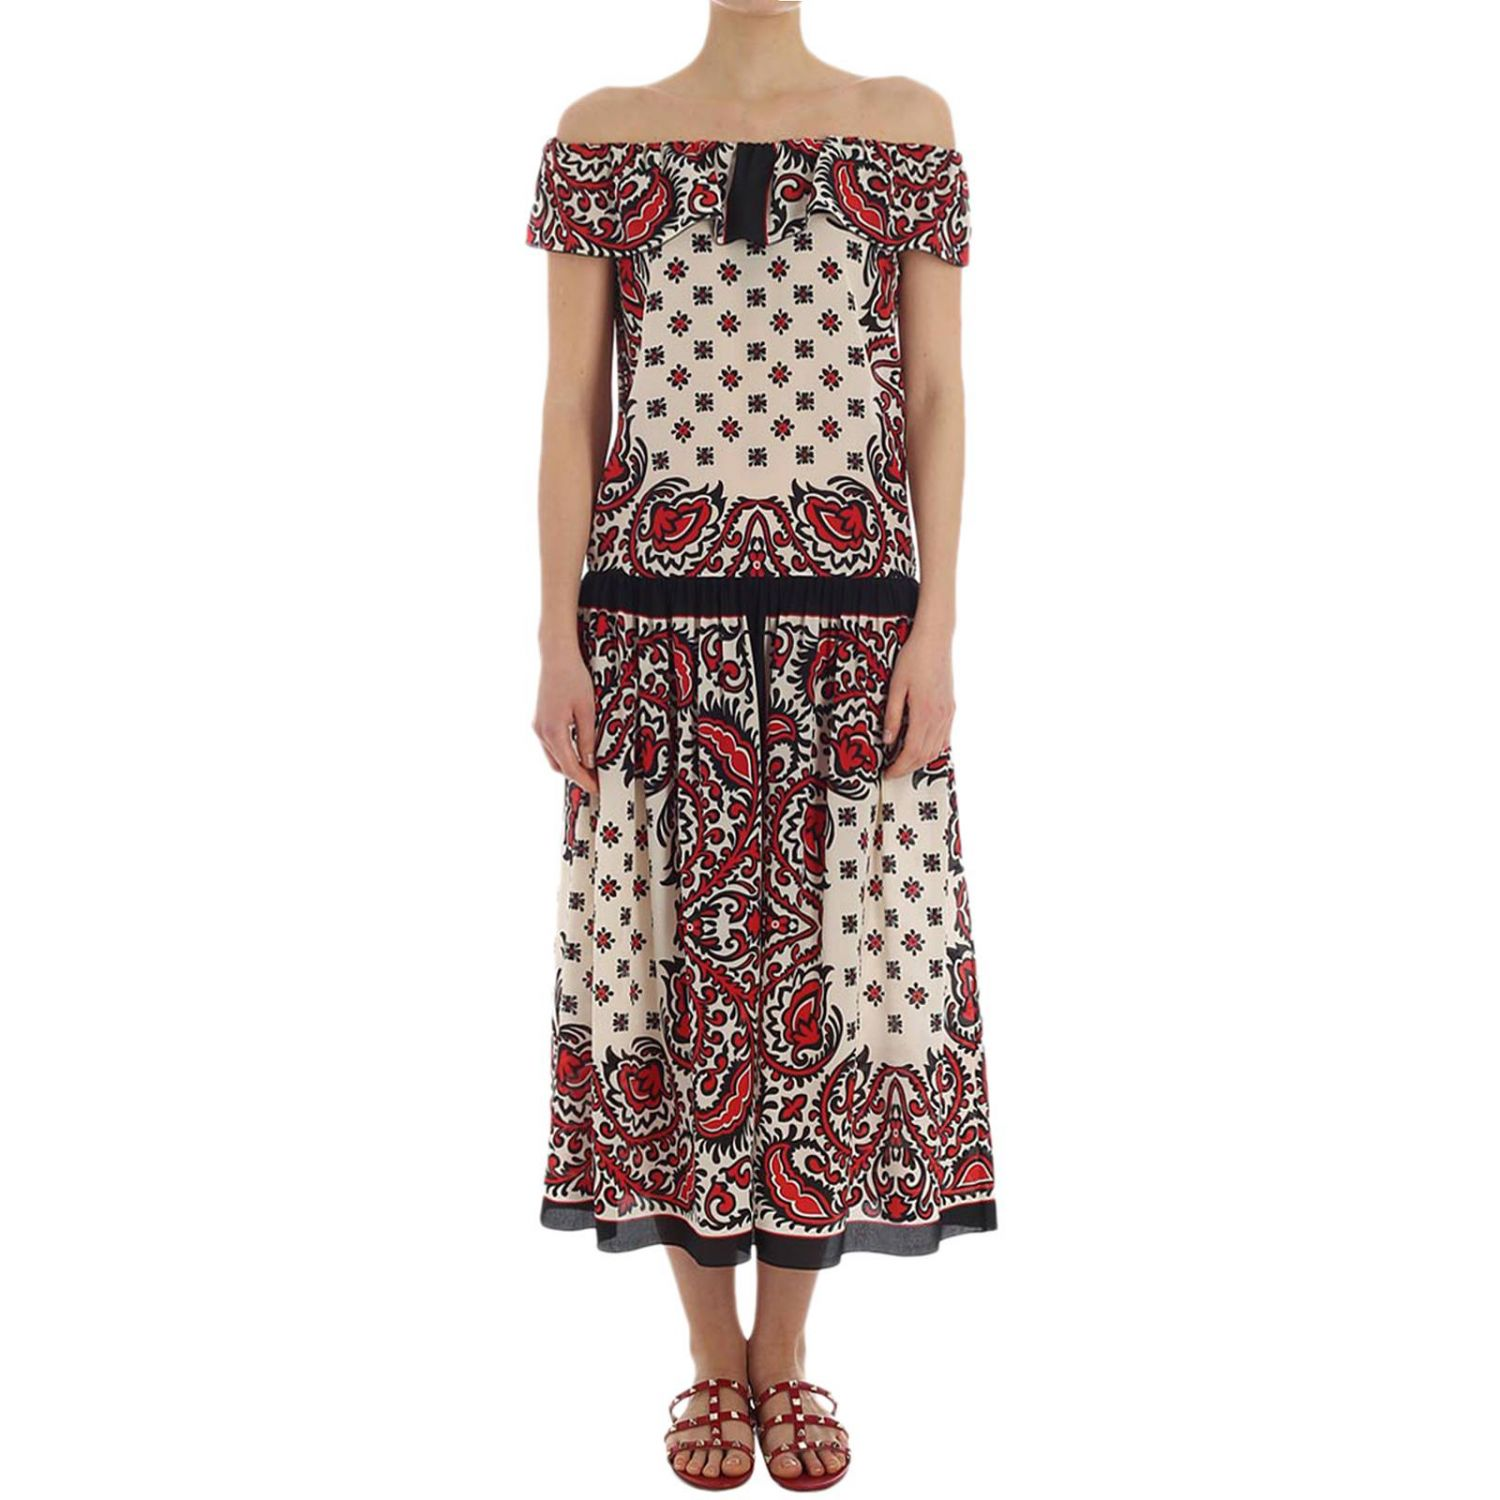 Dress Dress Women Red Valentino 8385005